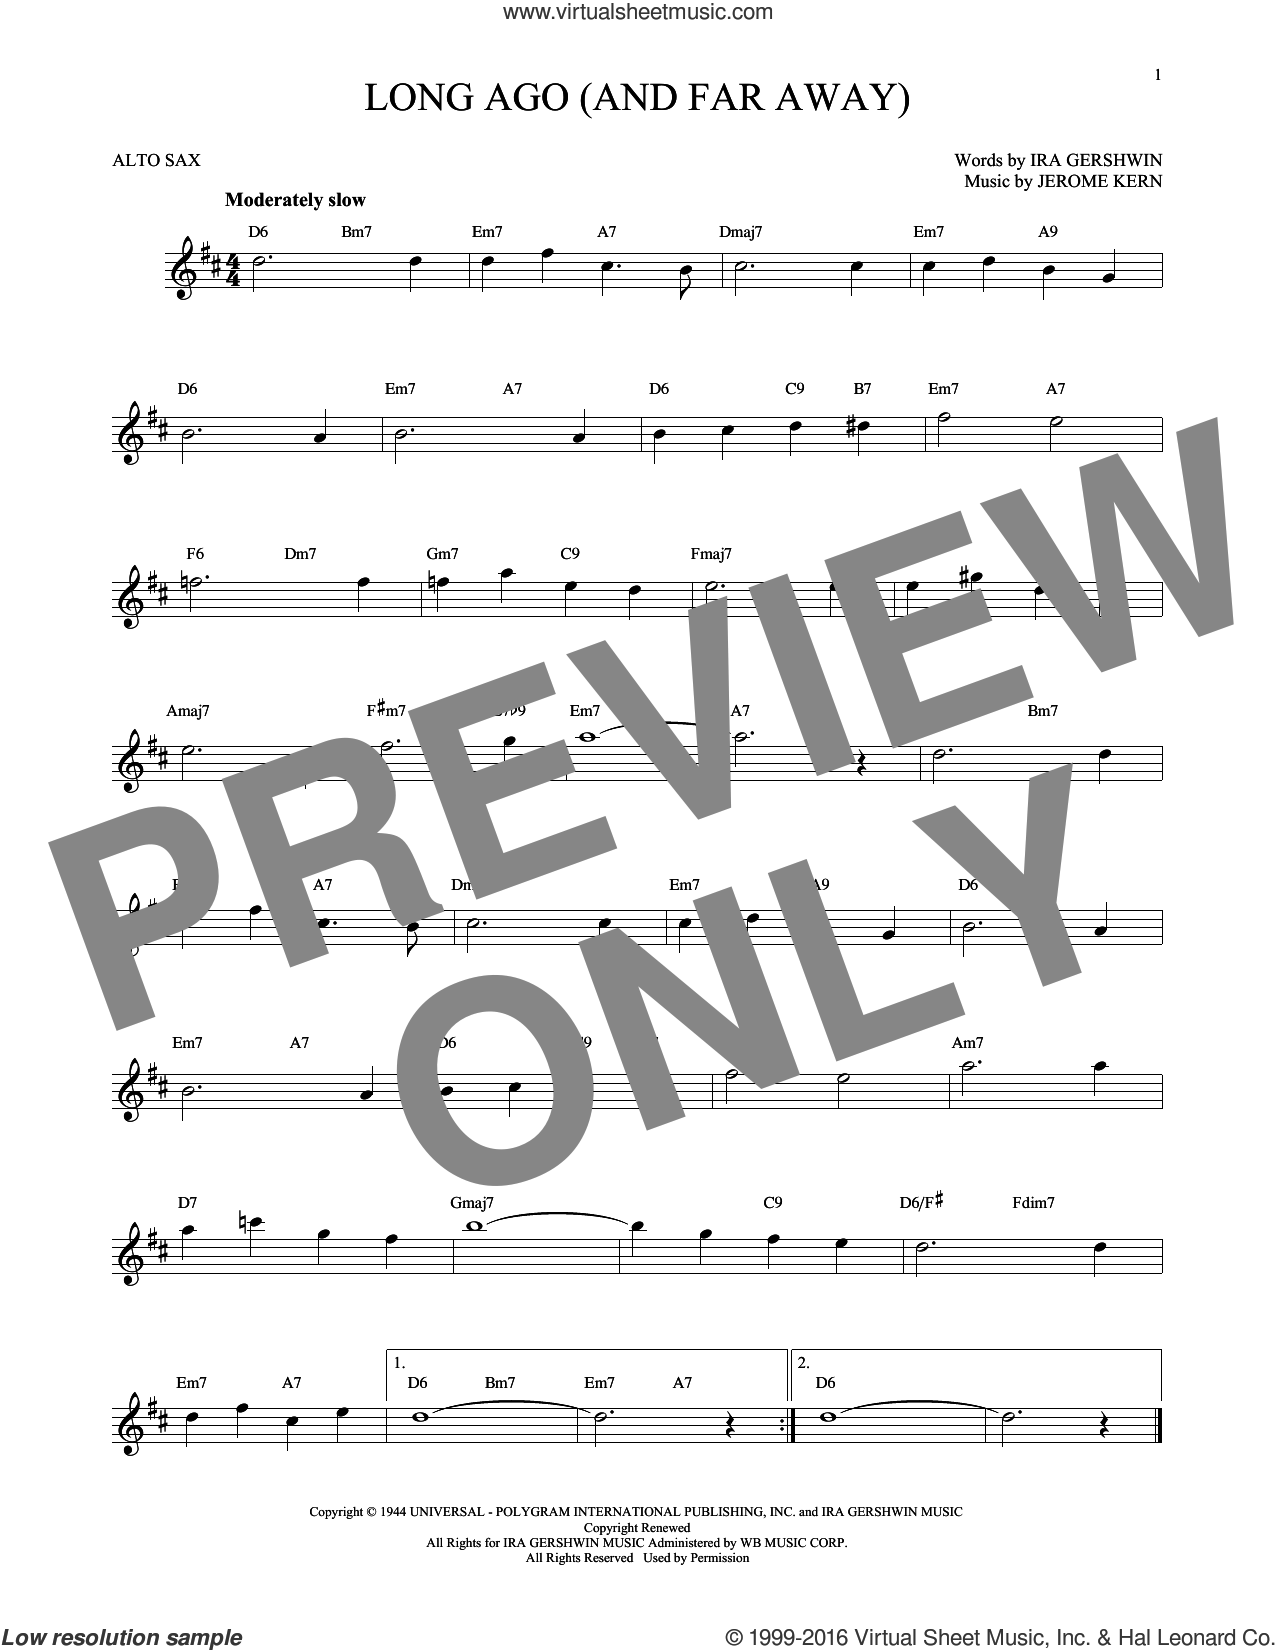 Long Ago (And Far Away) sheet music for alto saxophone solo by Ira Gershwin and Jerome Kern, intermediate alto saxophone. Score Image Preview.